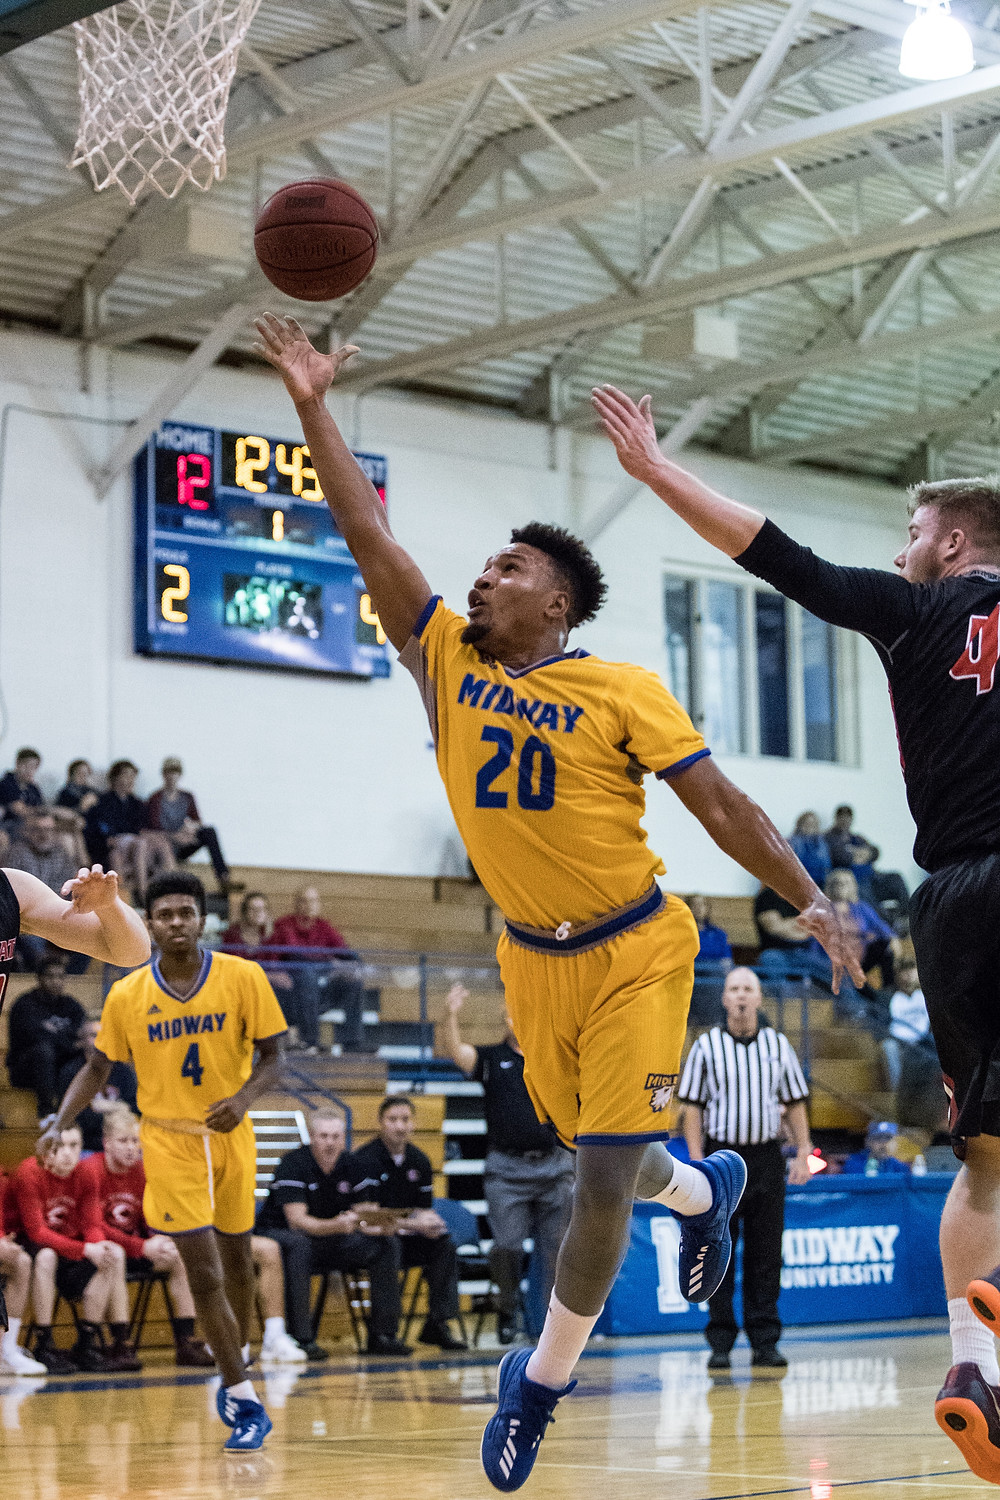 DJ TOWNSEND, a senior from Somerset, Ky., posted a new Midway career-high as he went for 33 points on 12-of-21 shooting, while knocking down seven triples in Midway's 84-73 loss to Ohio Christian University. (Midway Athletics photo)